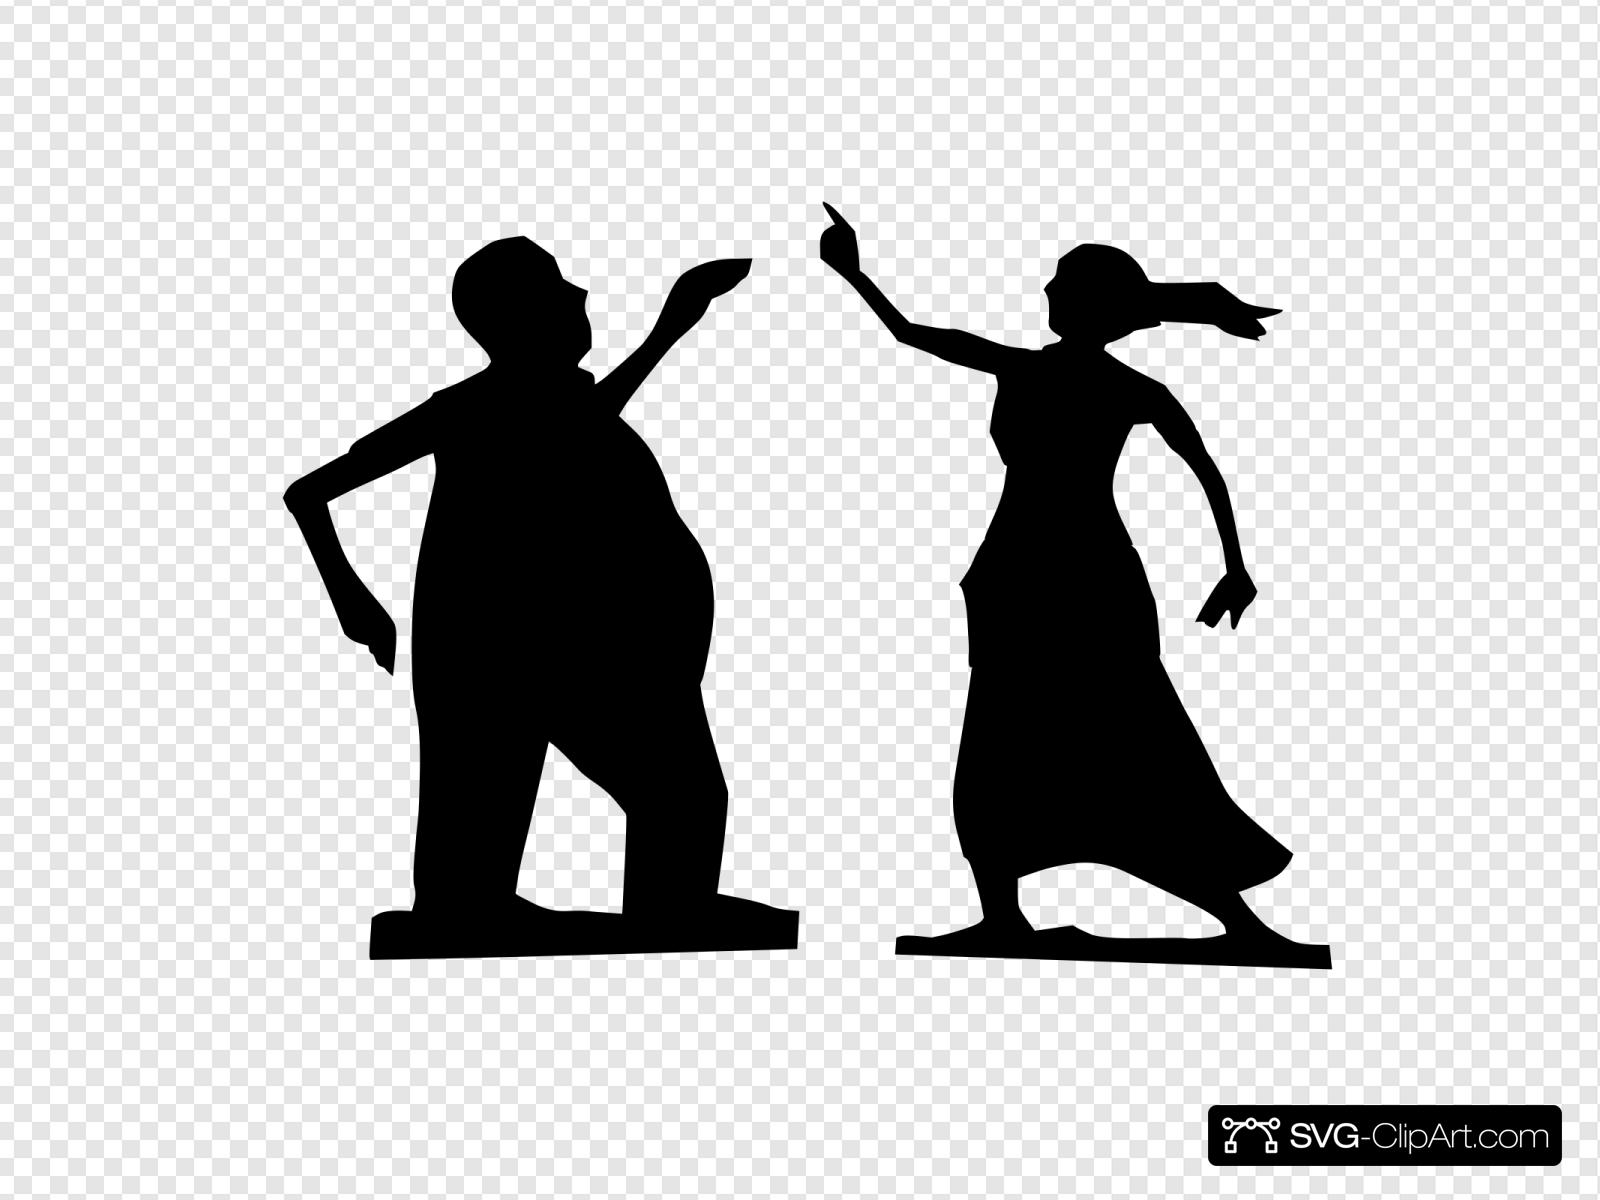 Man And Woman Dancing Silhouettes Svg Vector Man And Woman Dancing Silhouettes Clip Art Svg Clipart